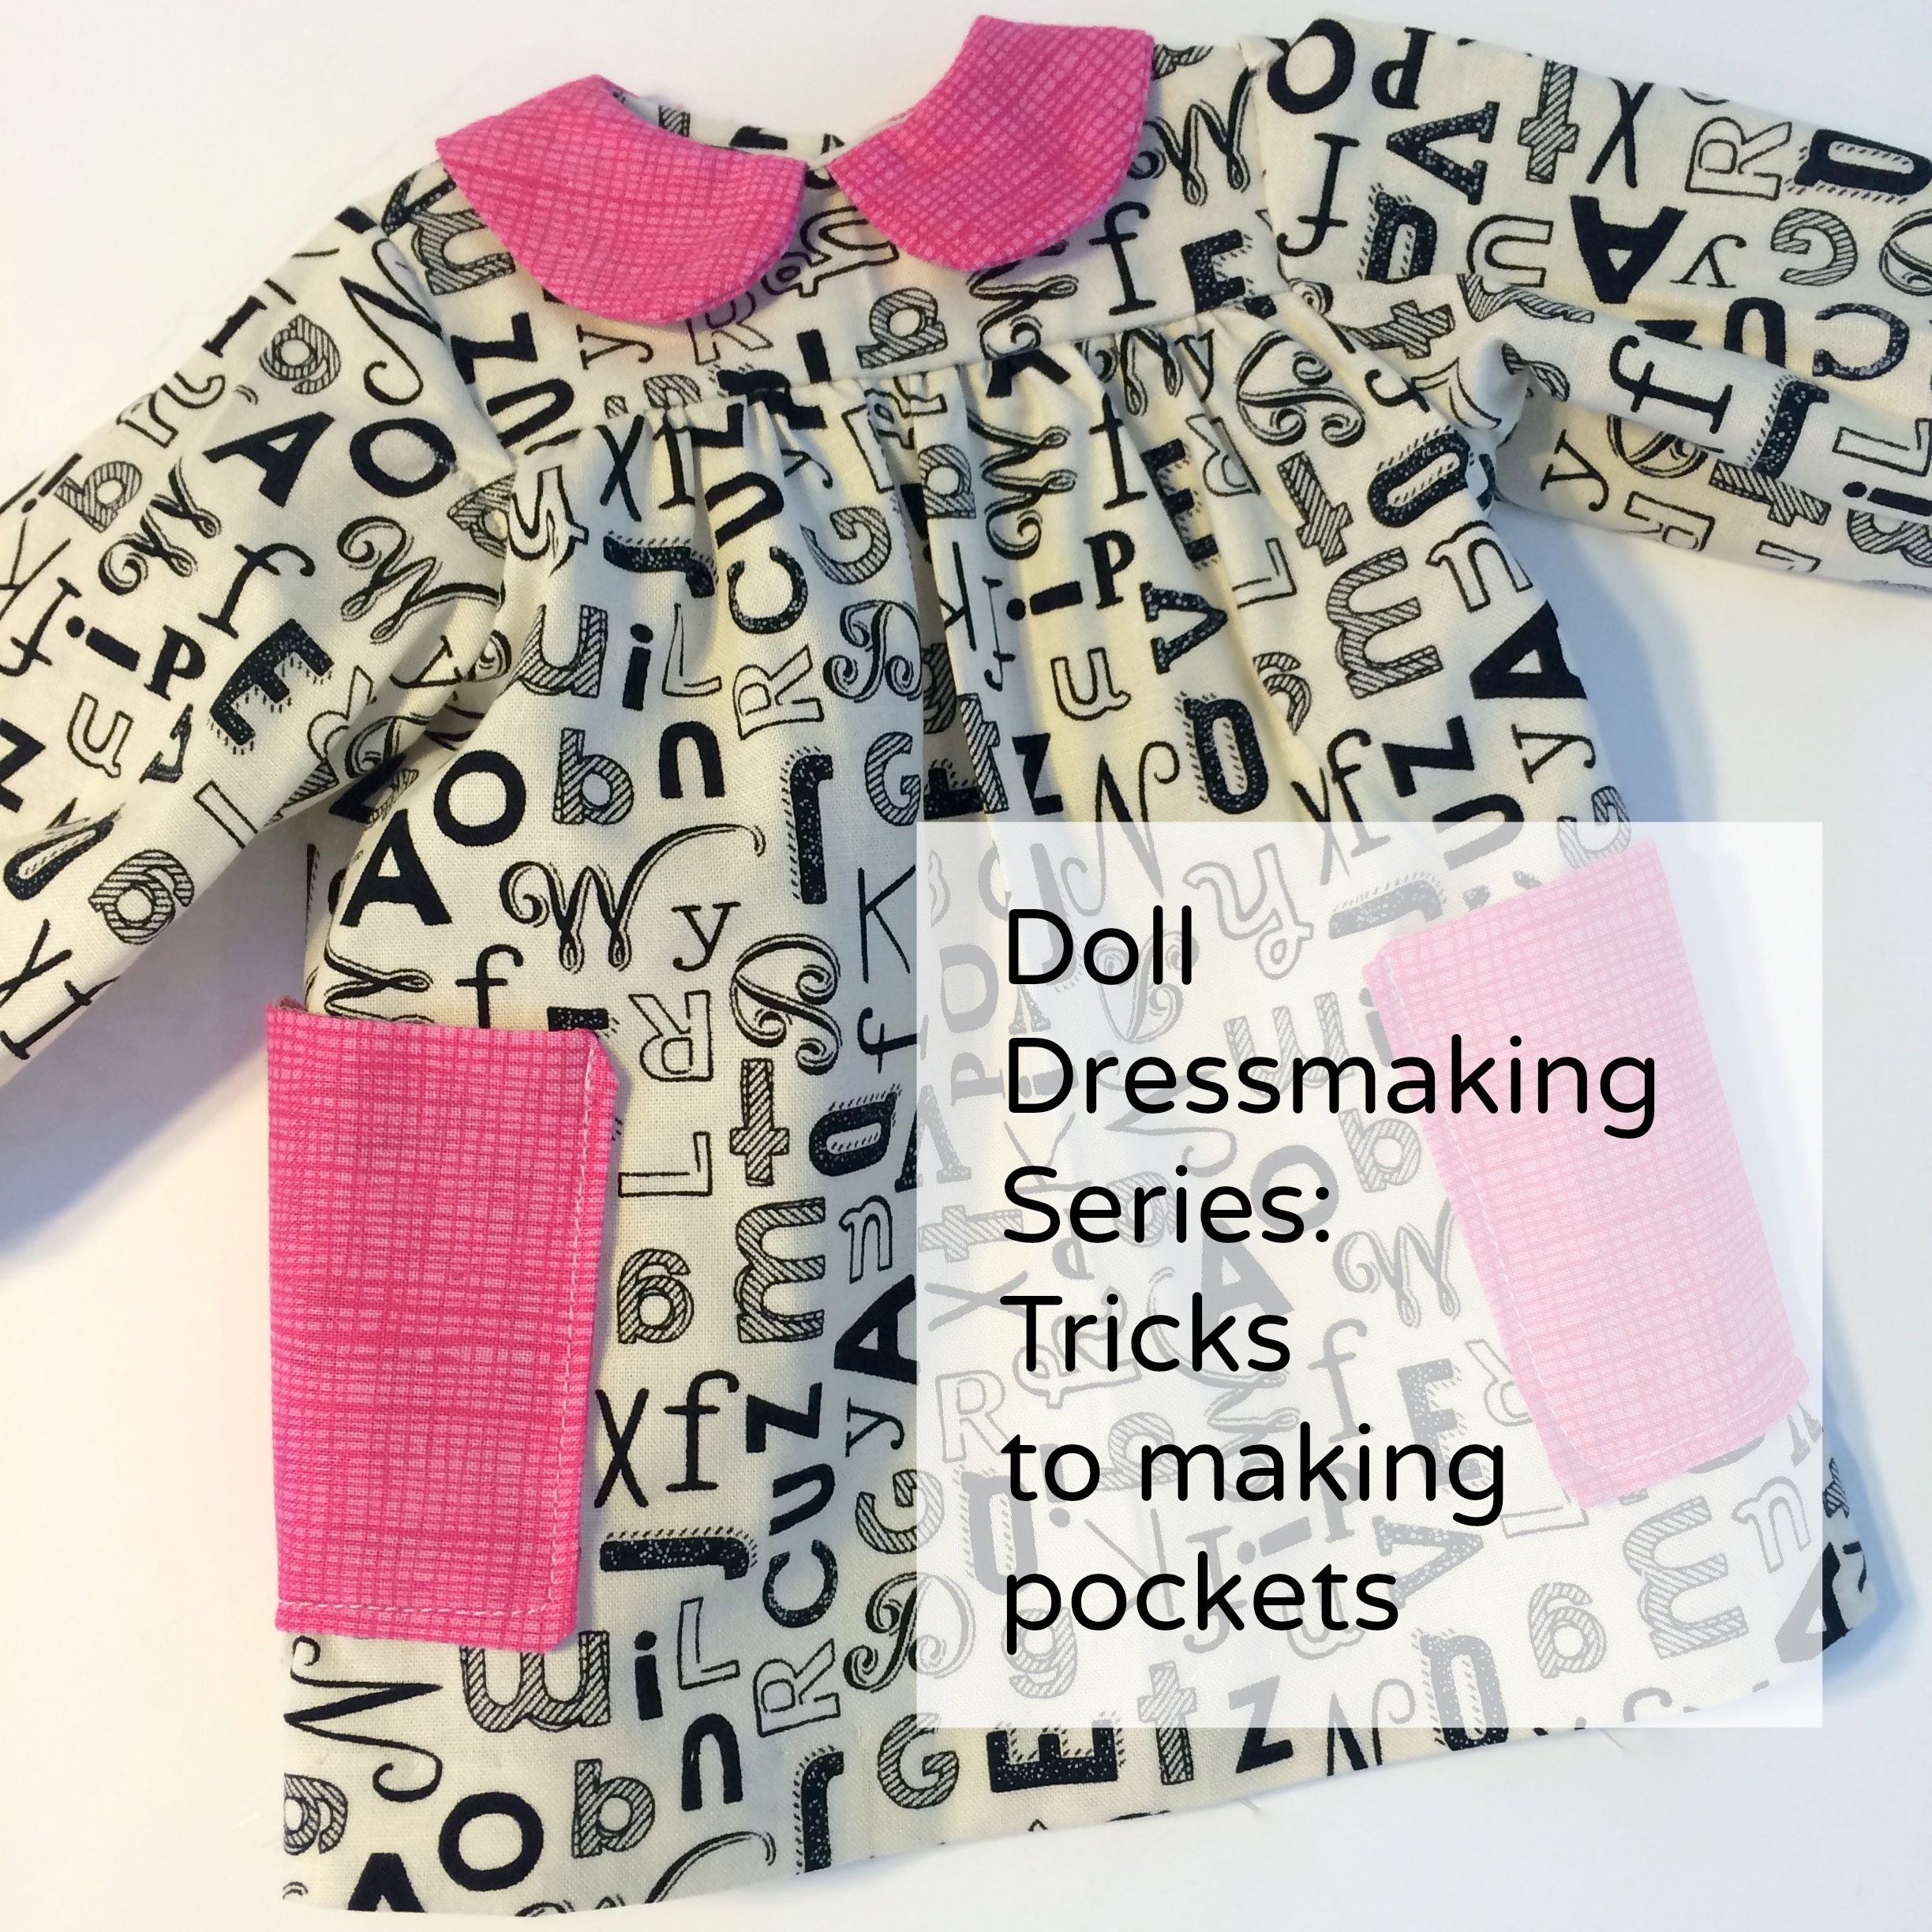 Doll Dressmaking: Pockets